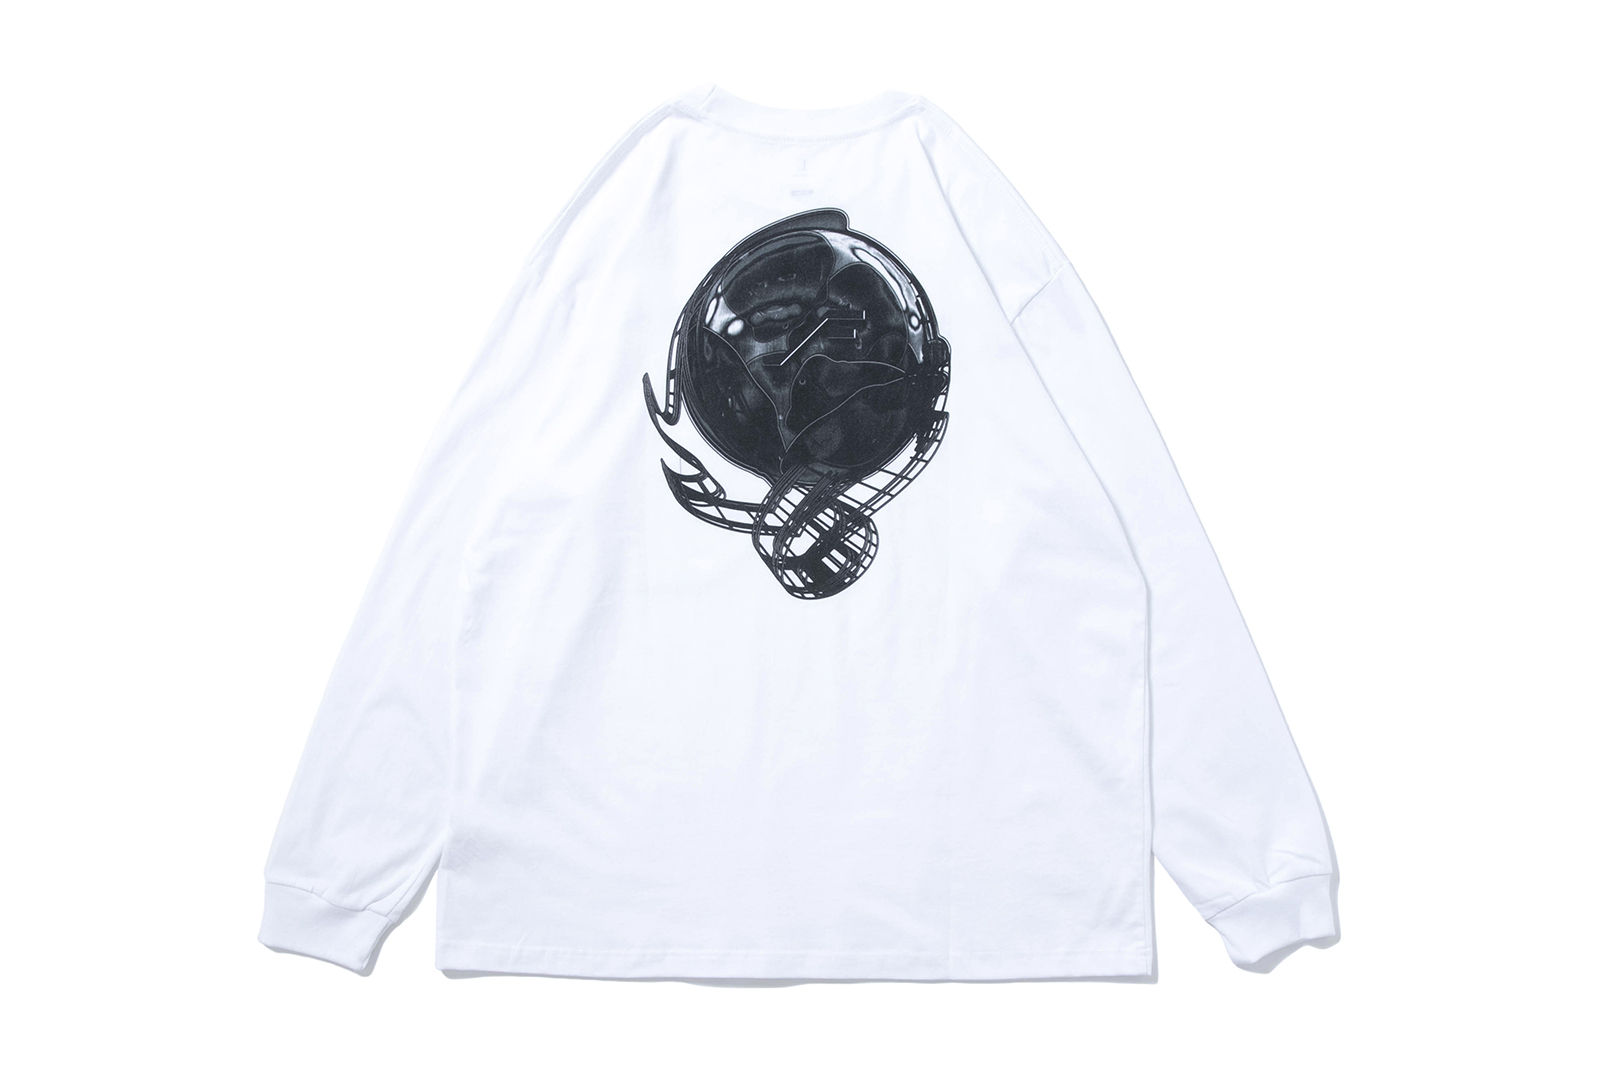 remix-l-fe3c_official-metal-ball-ls-tee-white_p1